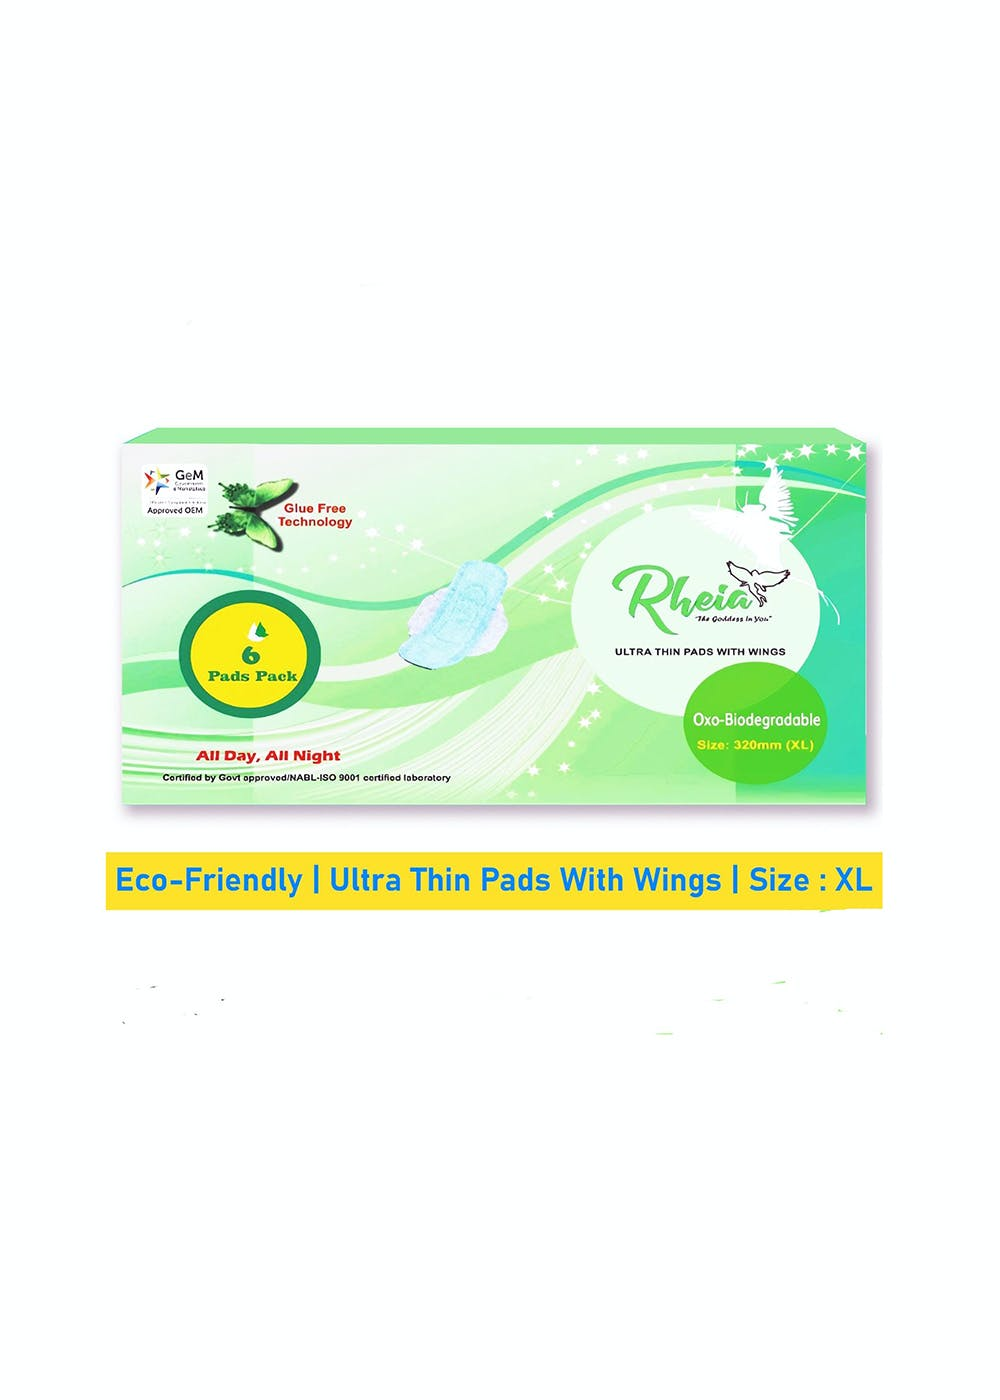 36 Sanitary Napkin Pads in Pack of 6 - XL